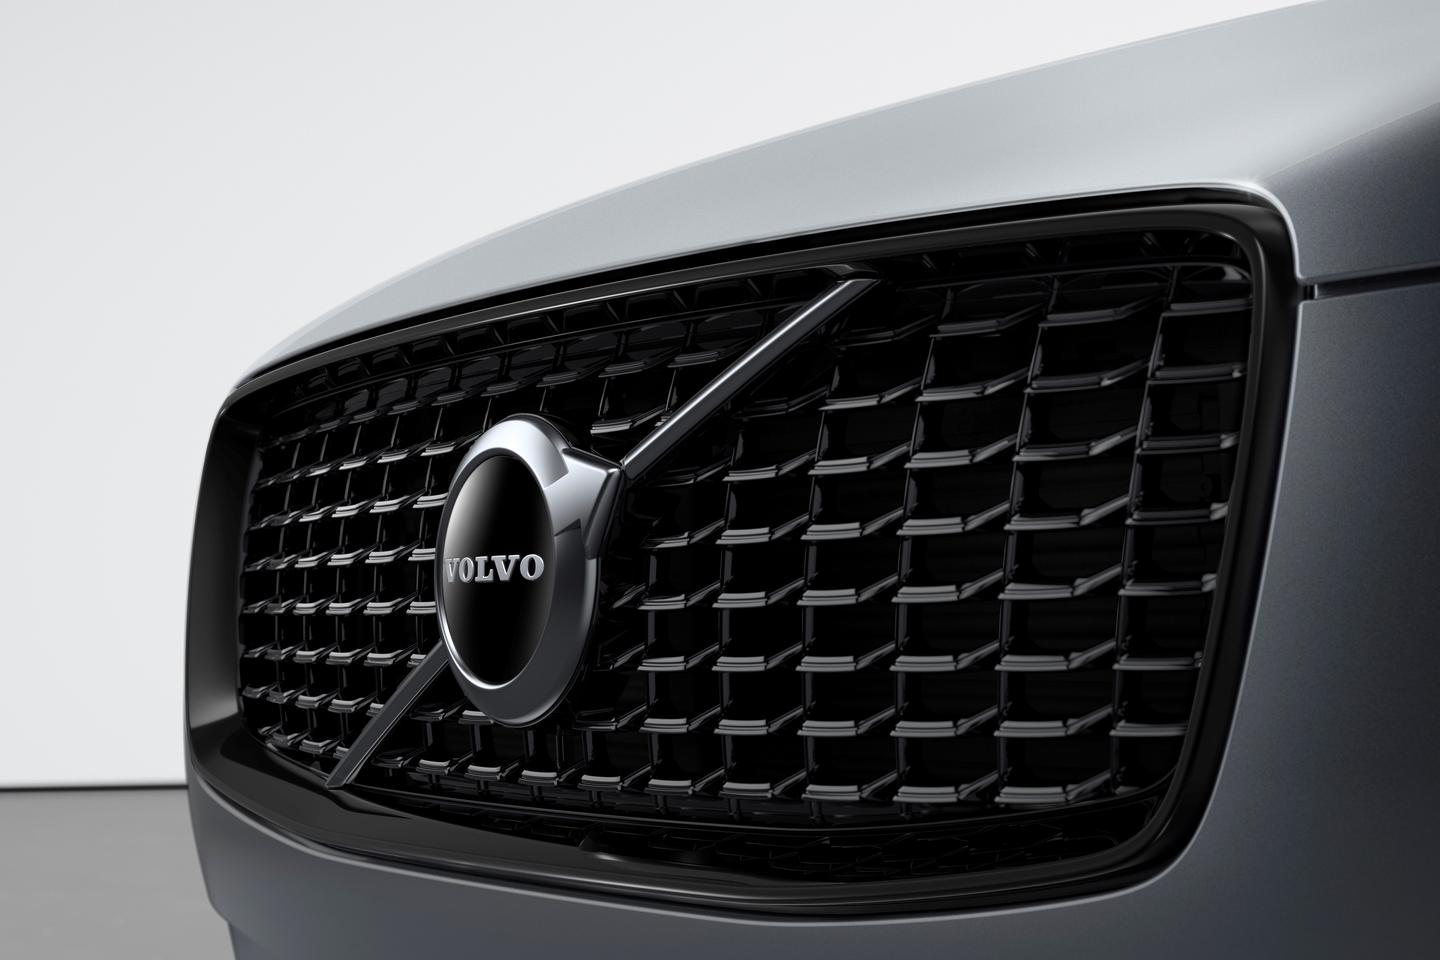 Volvo has formed a new agreement with Waymo to develop autonomous electric vehicles